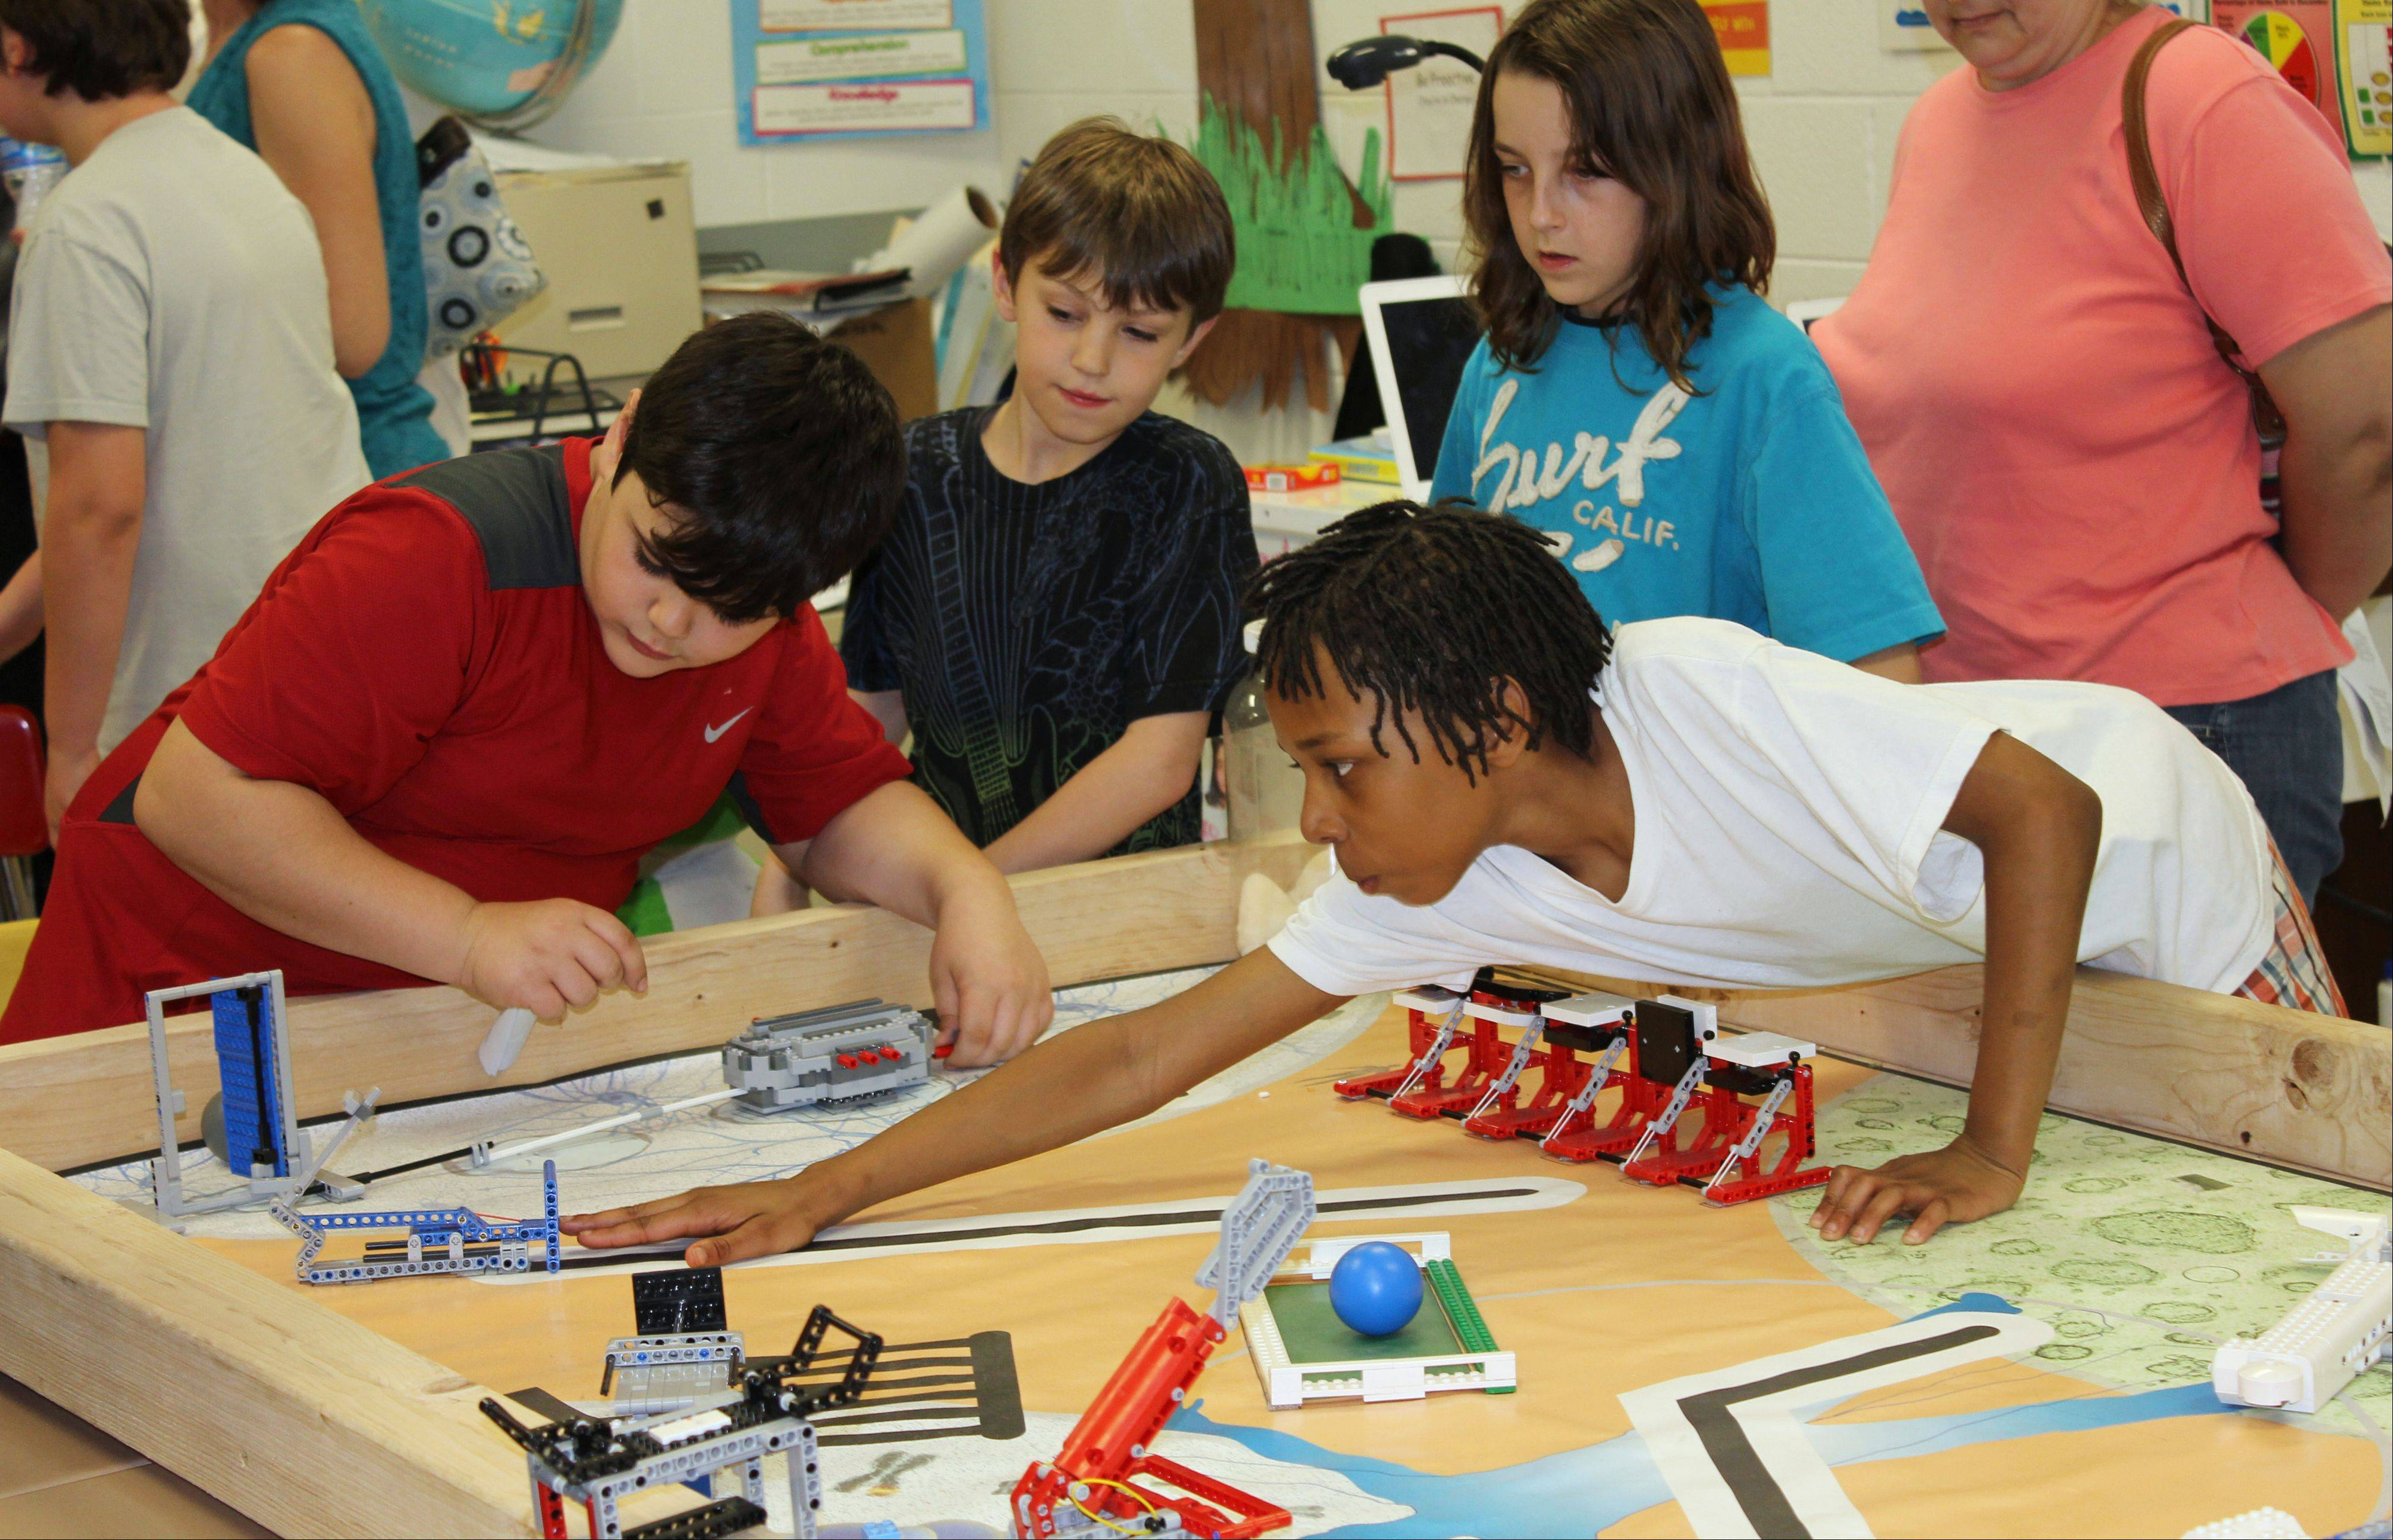 Students participate in a recent science program at Mechanics Grove School in Mundelein.